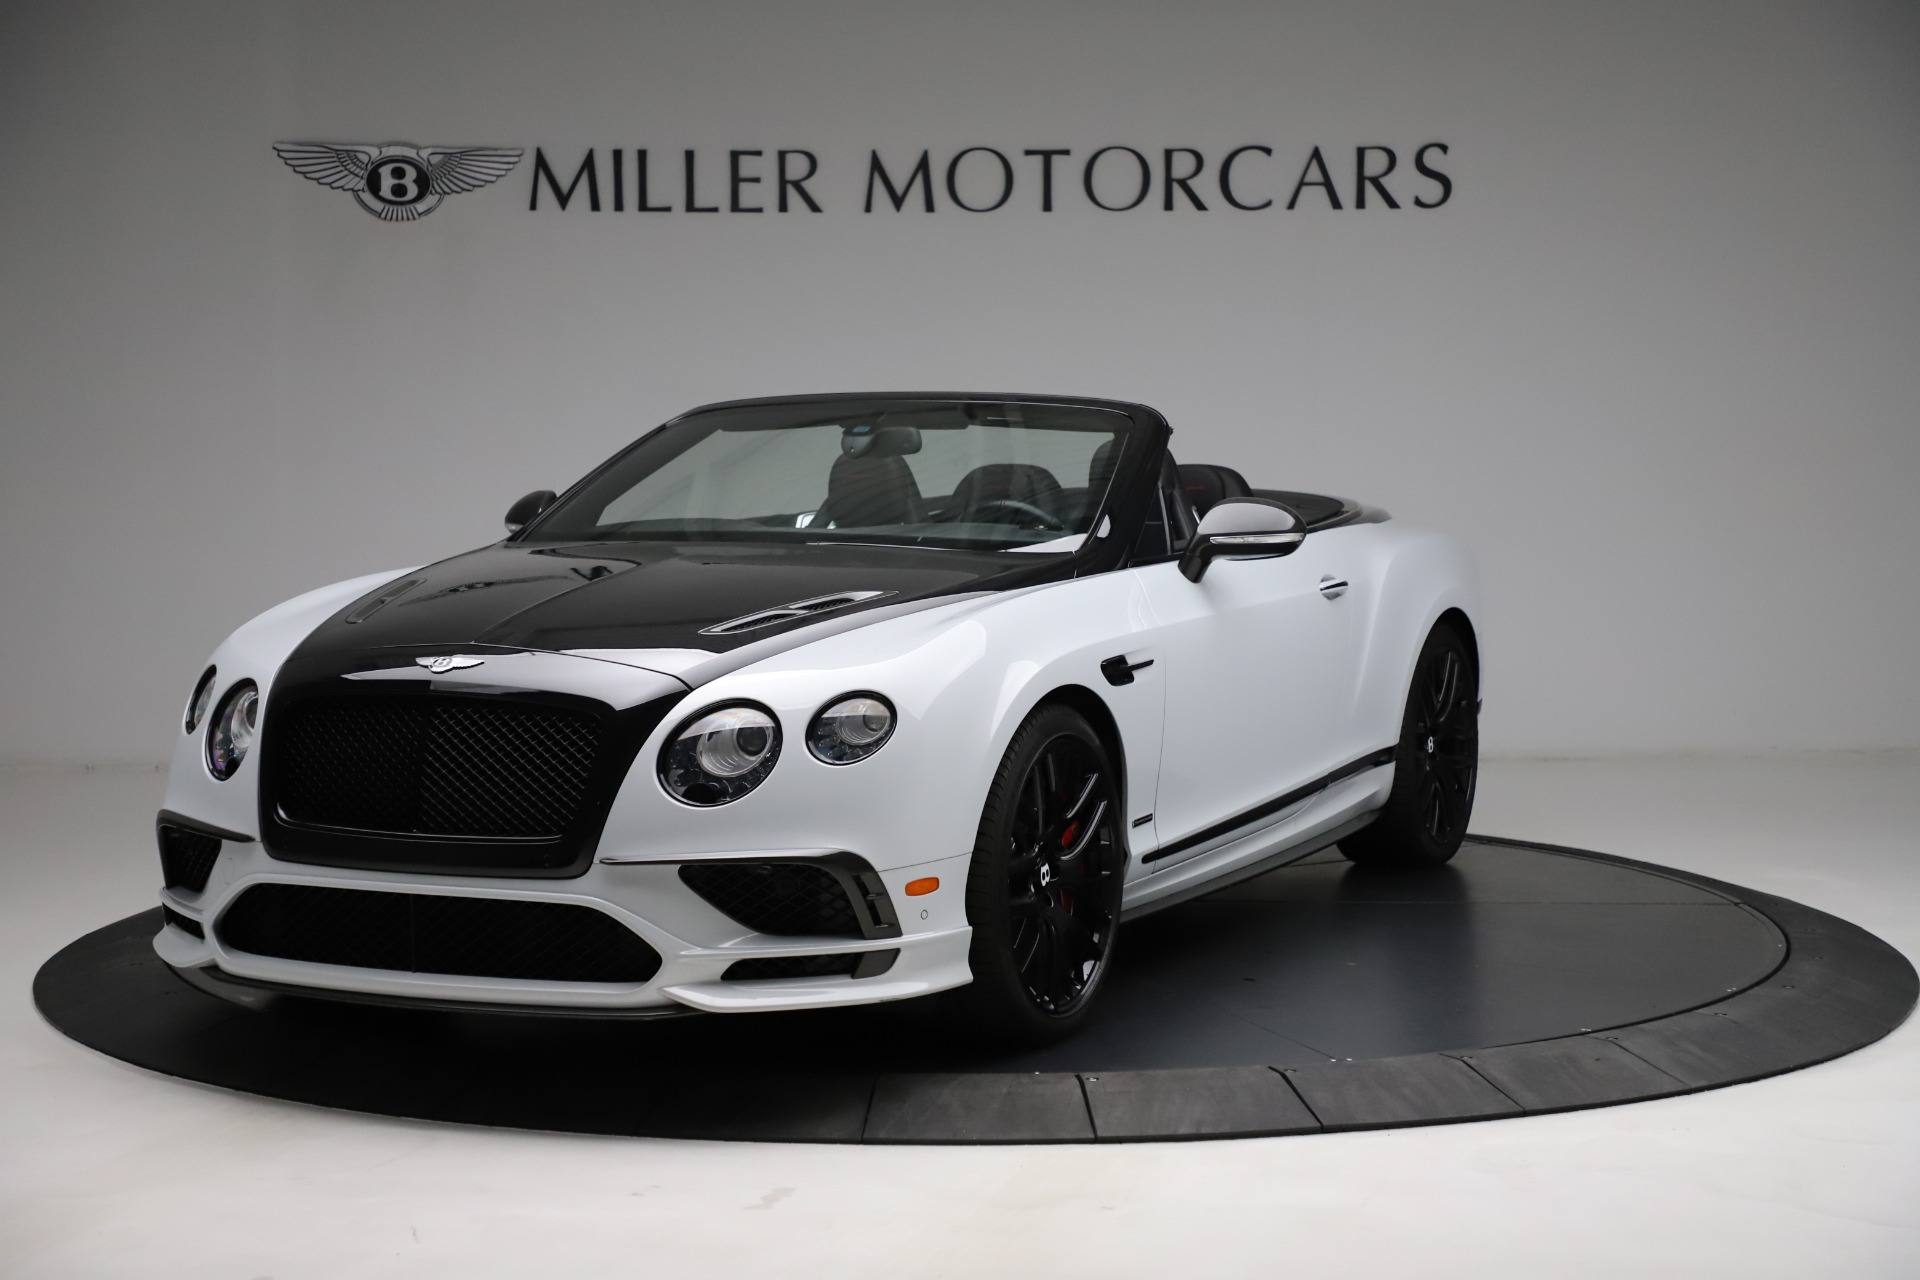 Used 2018 Bentley Continental GT Supersports for sale $209,900 at Aston Martin of Greenwich in Greenwich CT 06830 1